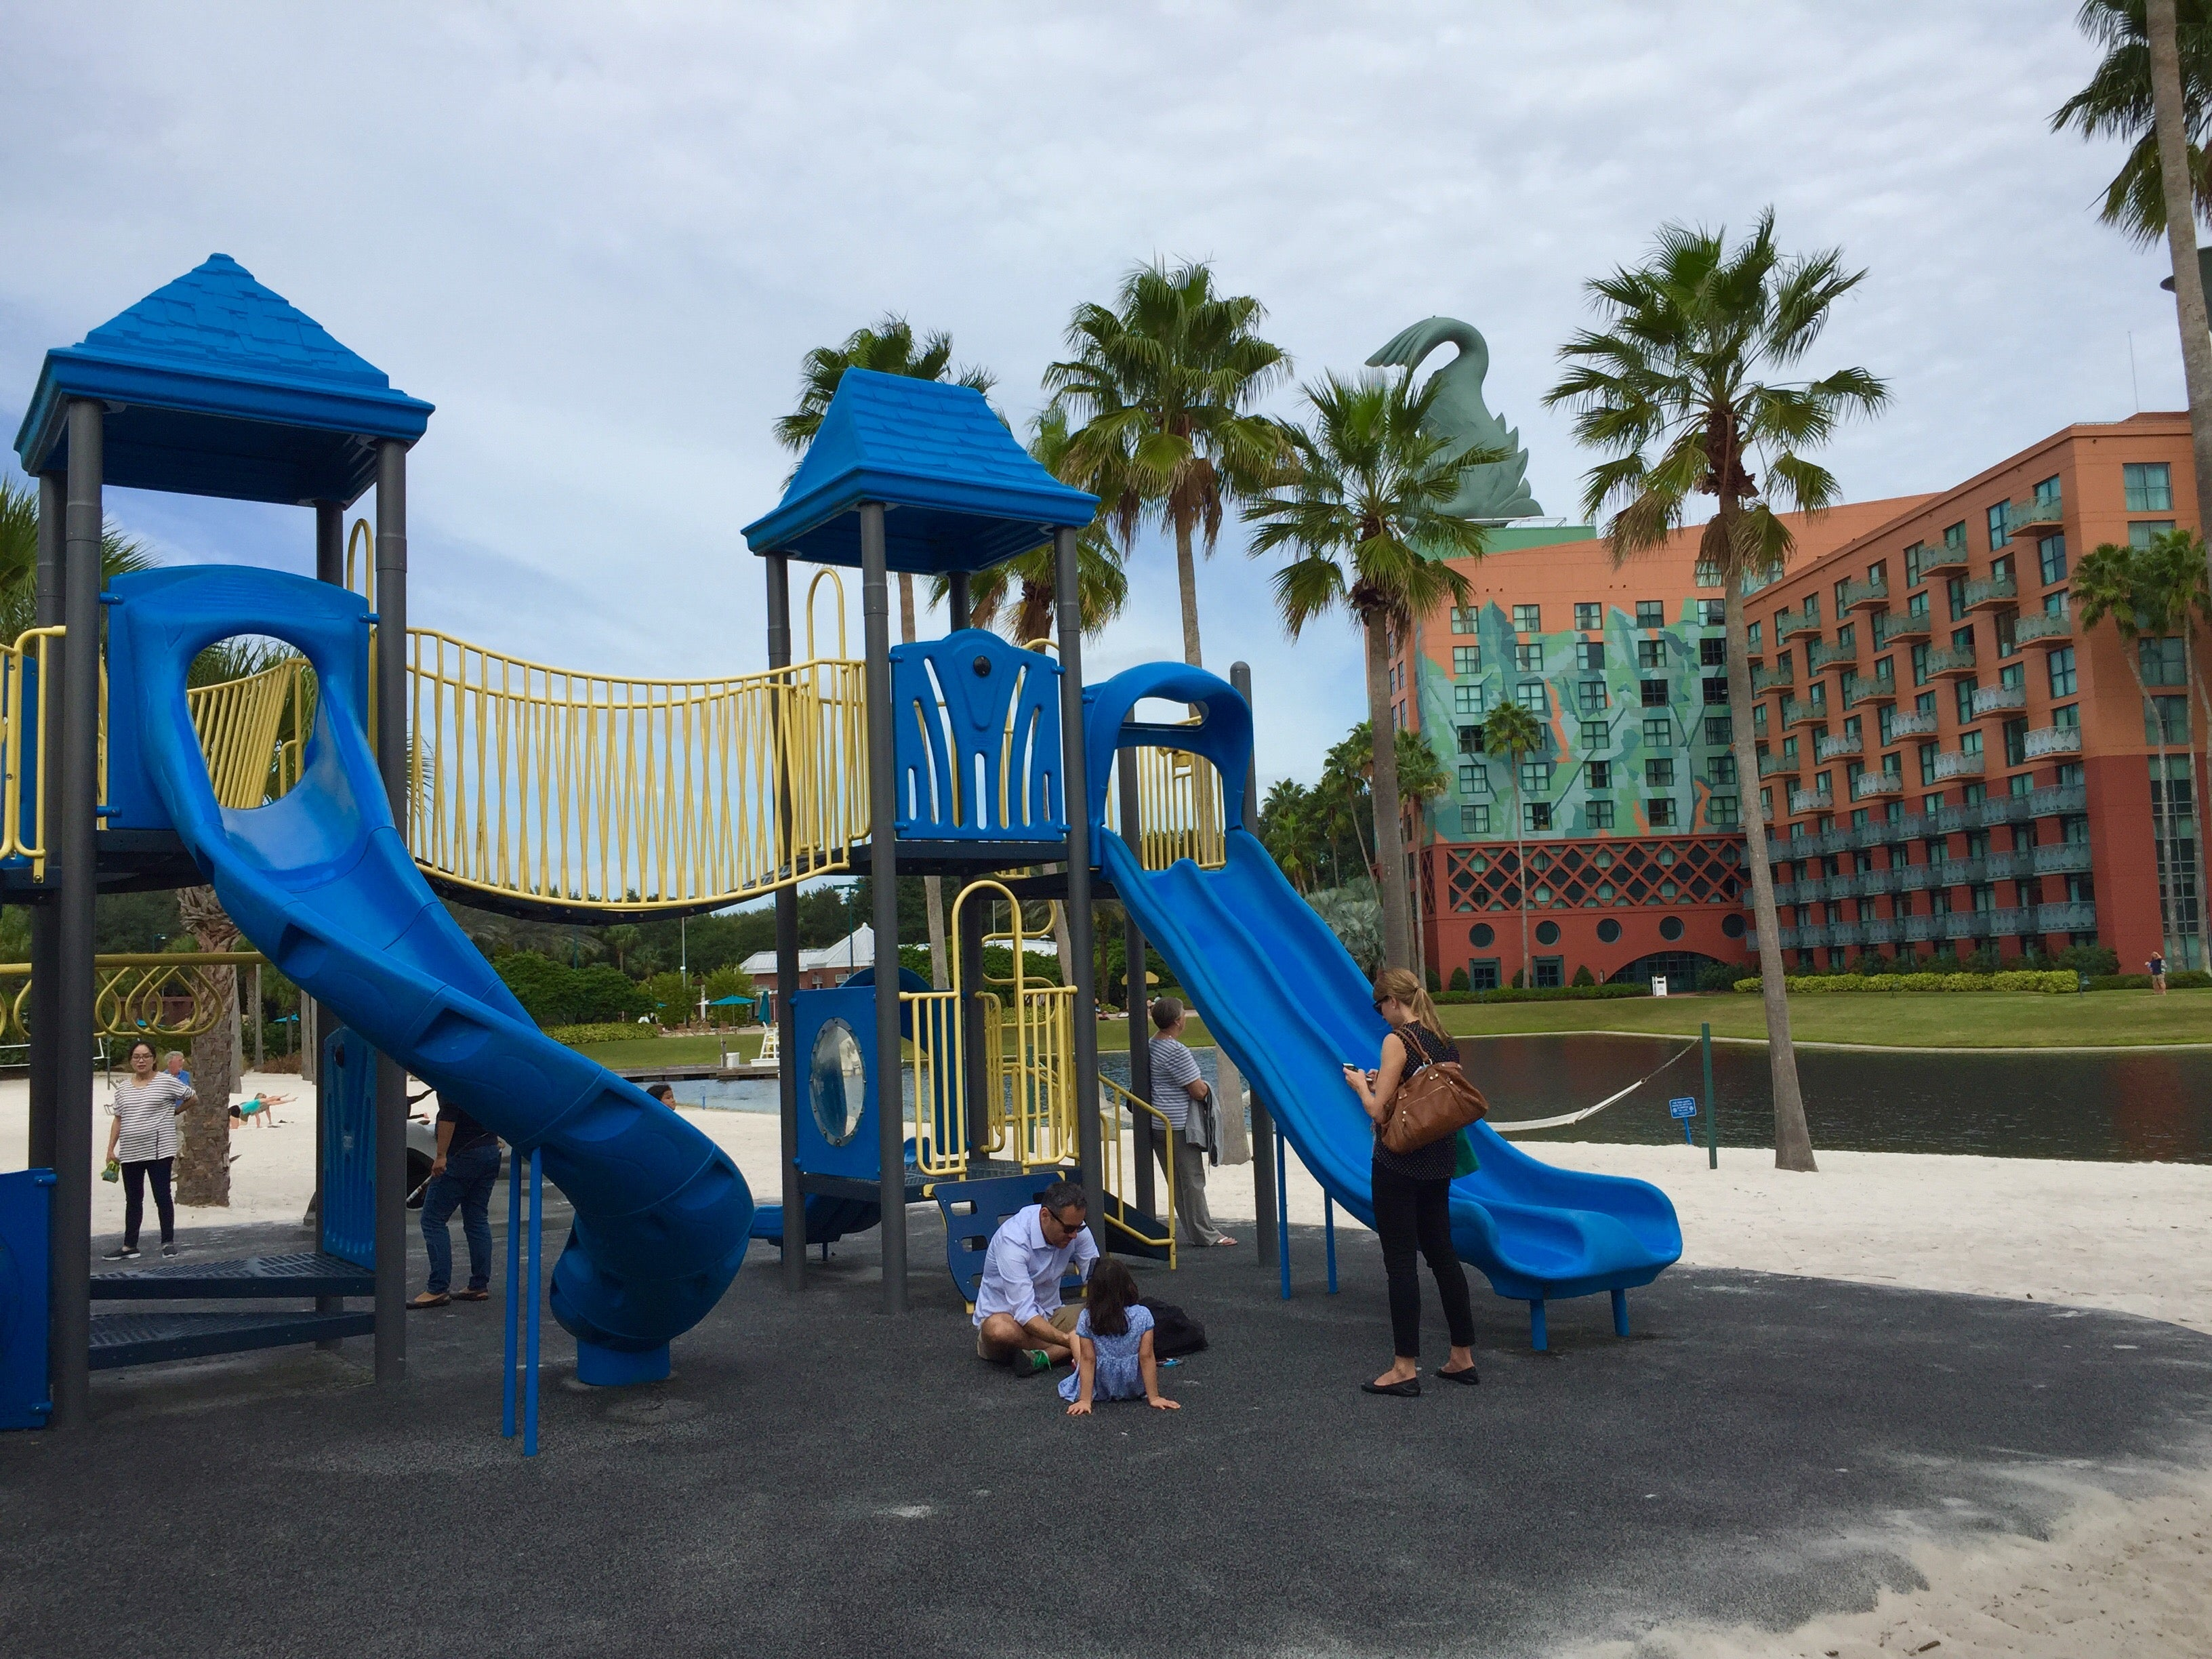 Disney Perks And Amenities At The Swan And Dolphin Resorts The